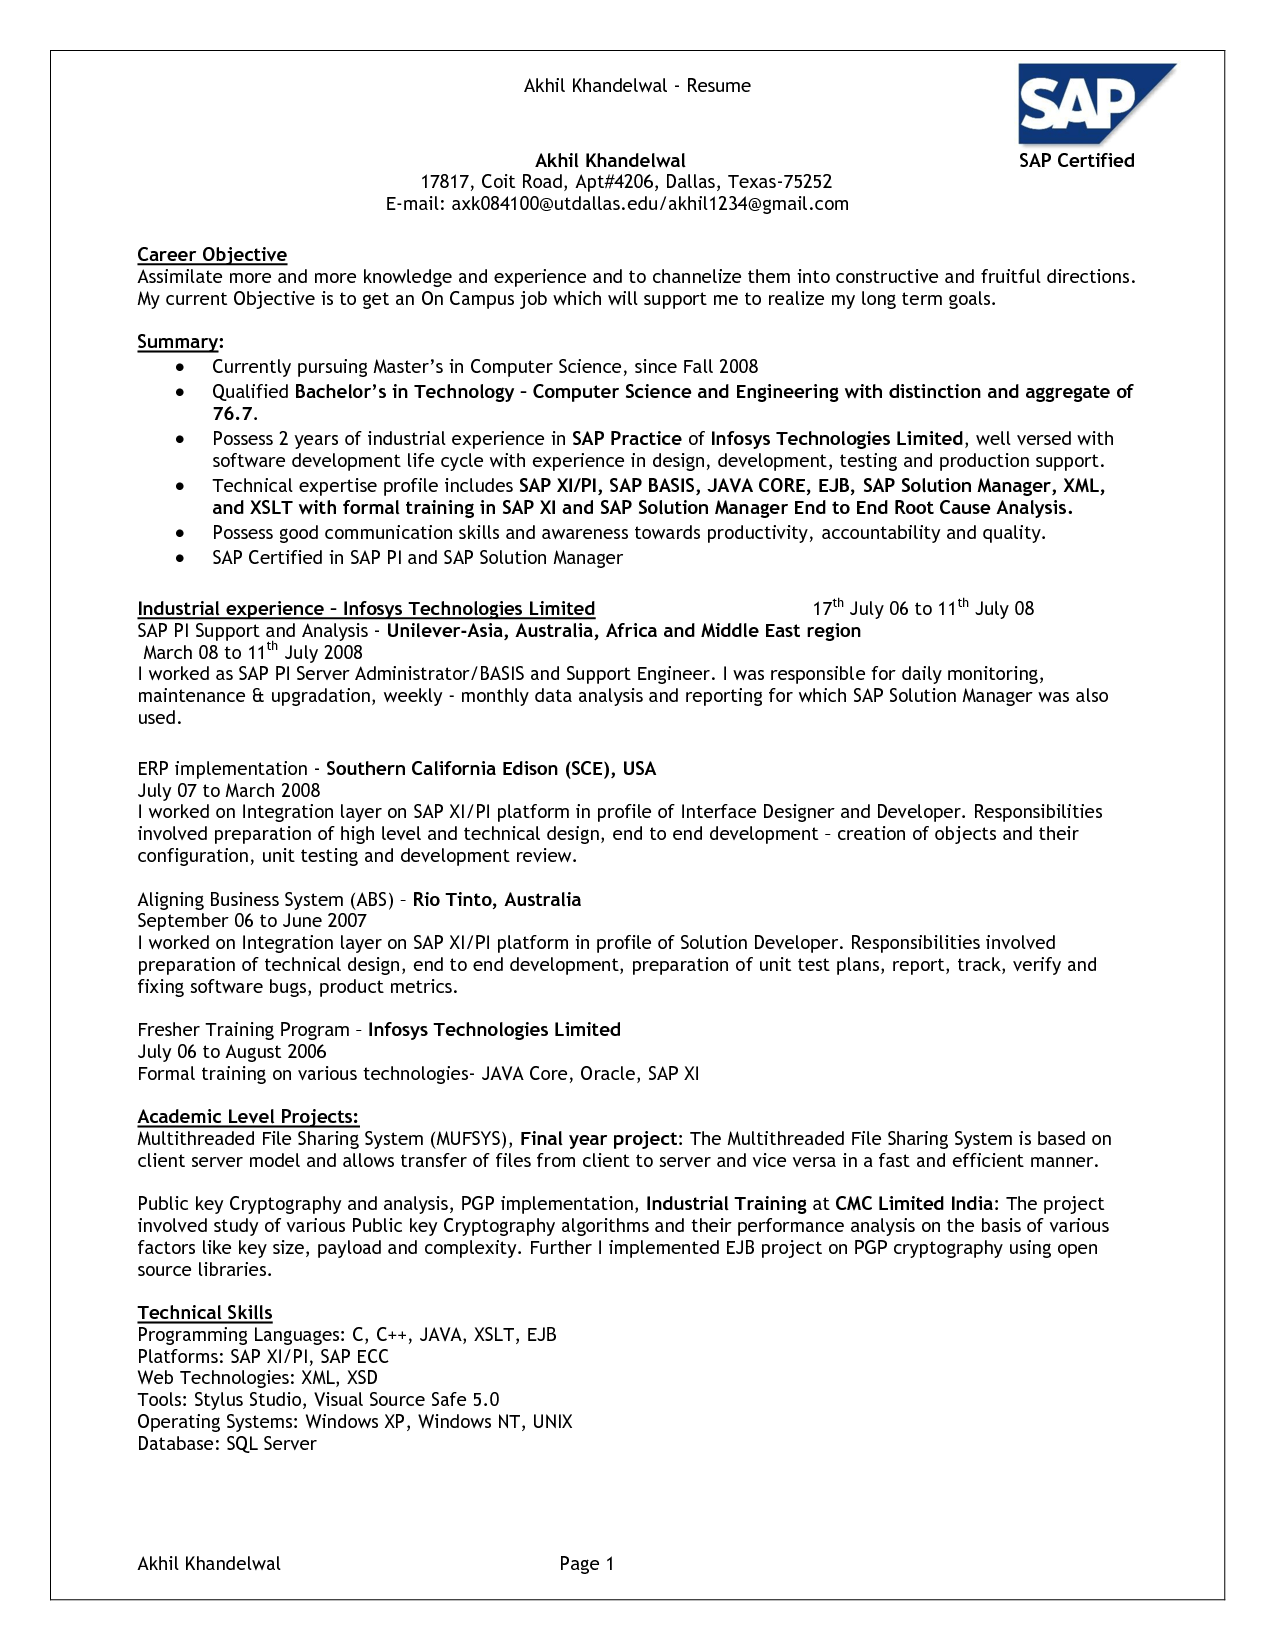 resume of sap mm interview the best estimate connoisseur games